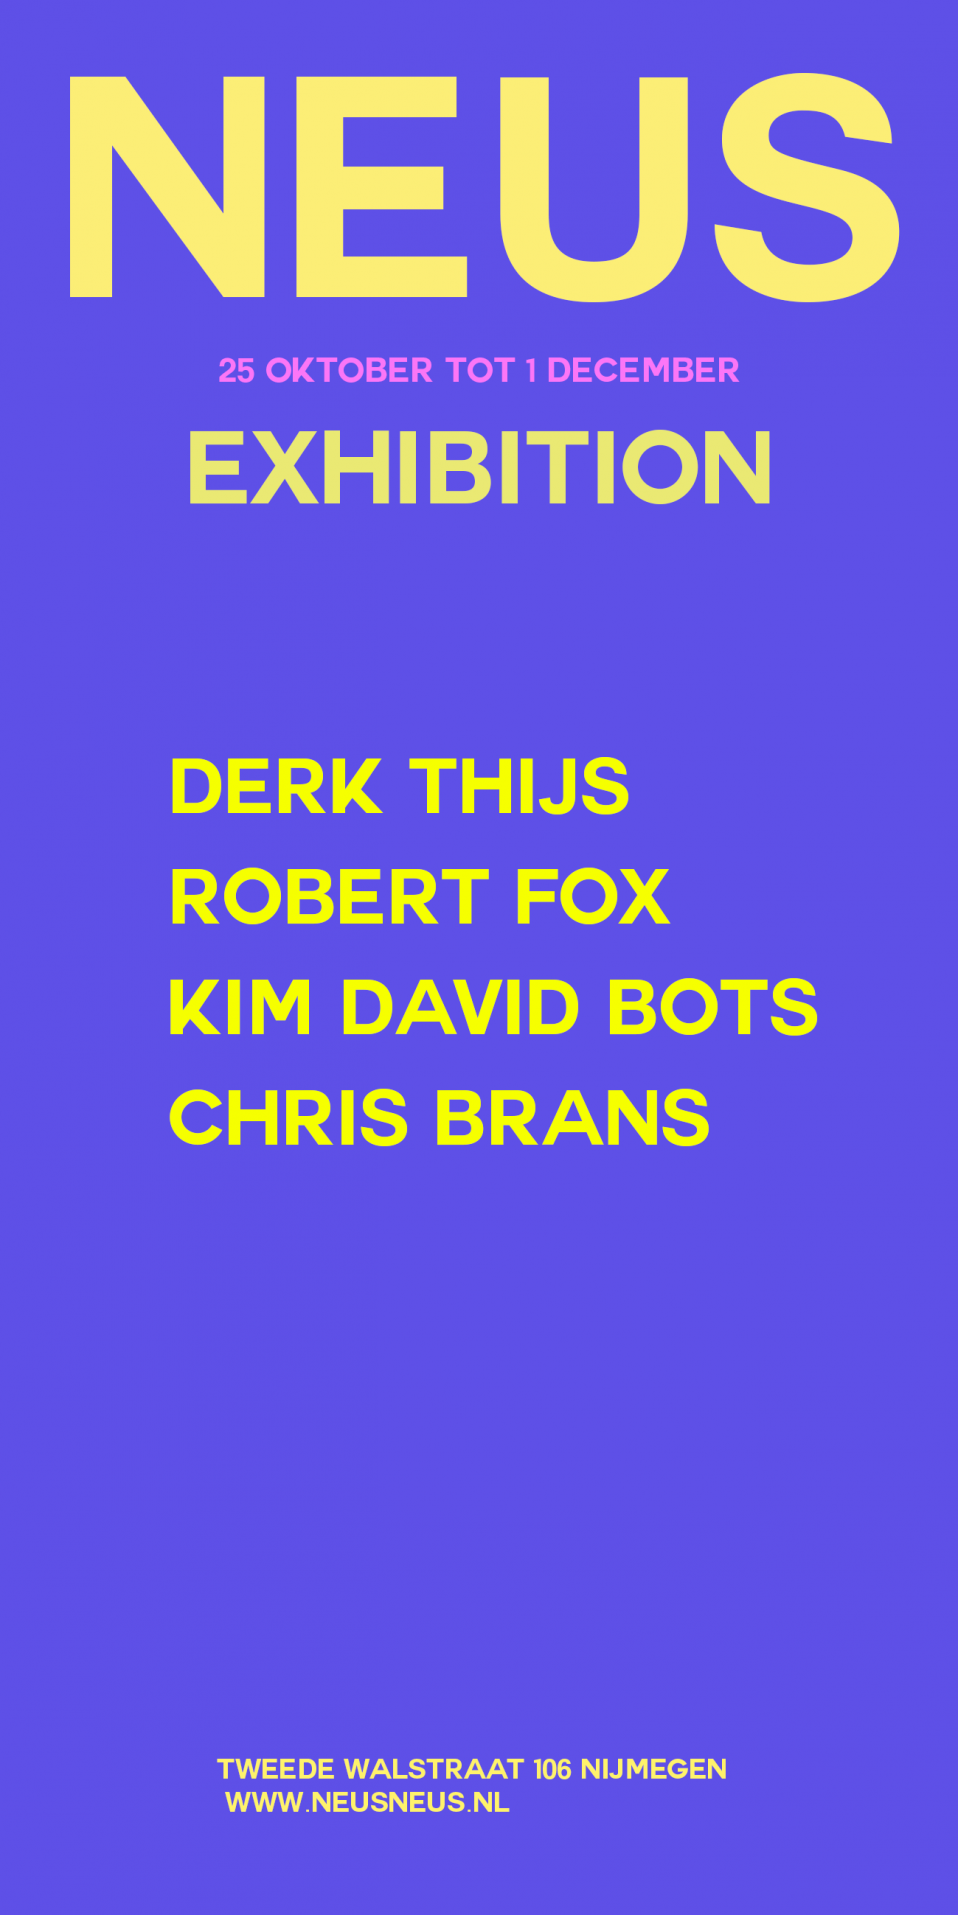 Derk Thijs, Robert Fox, Kim David Bots, Chris Brans